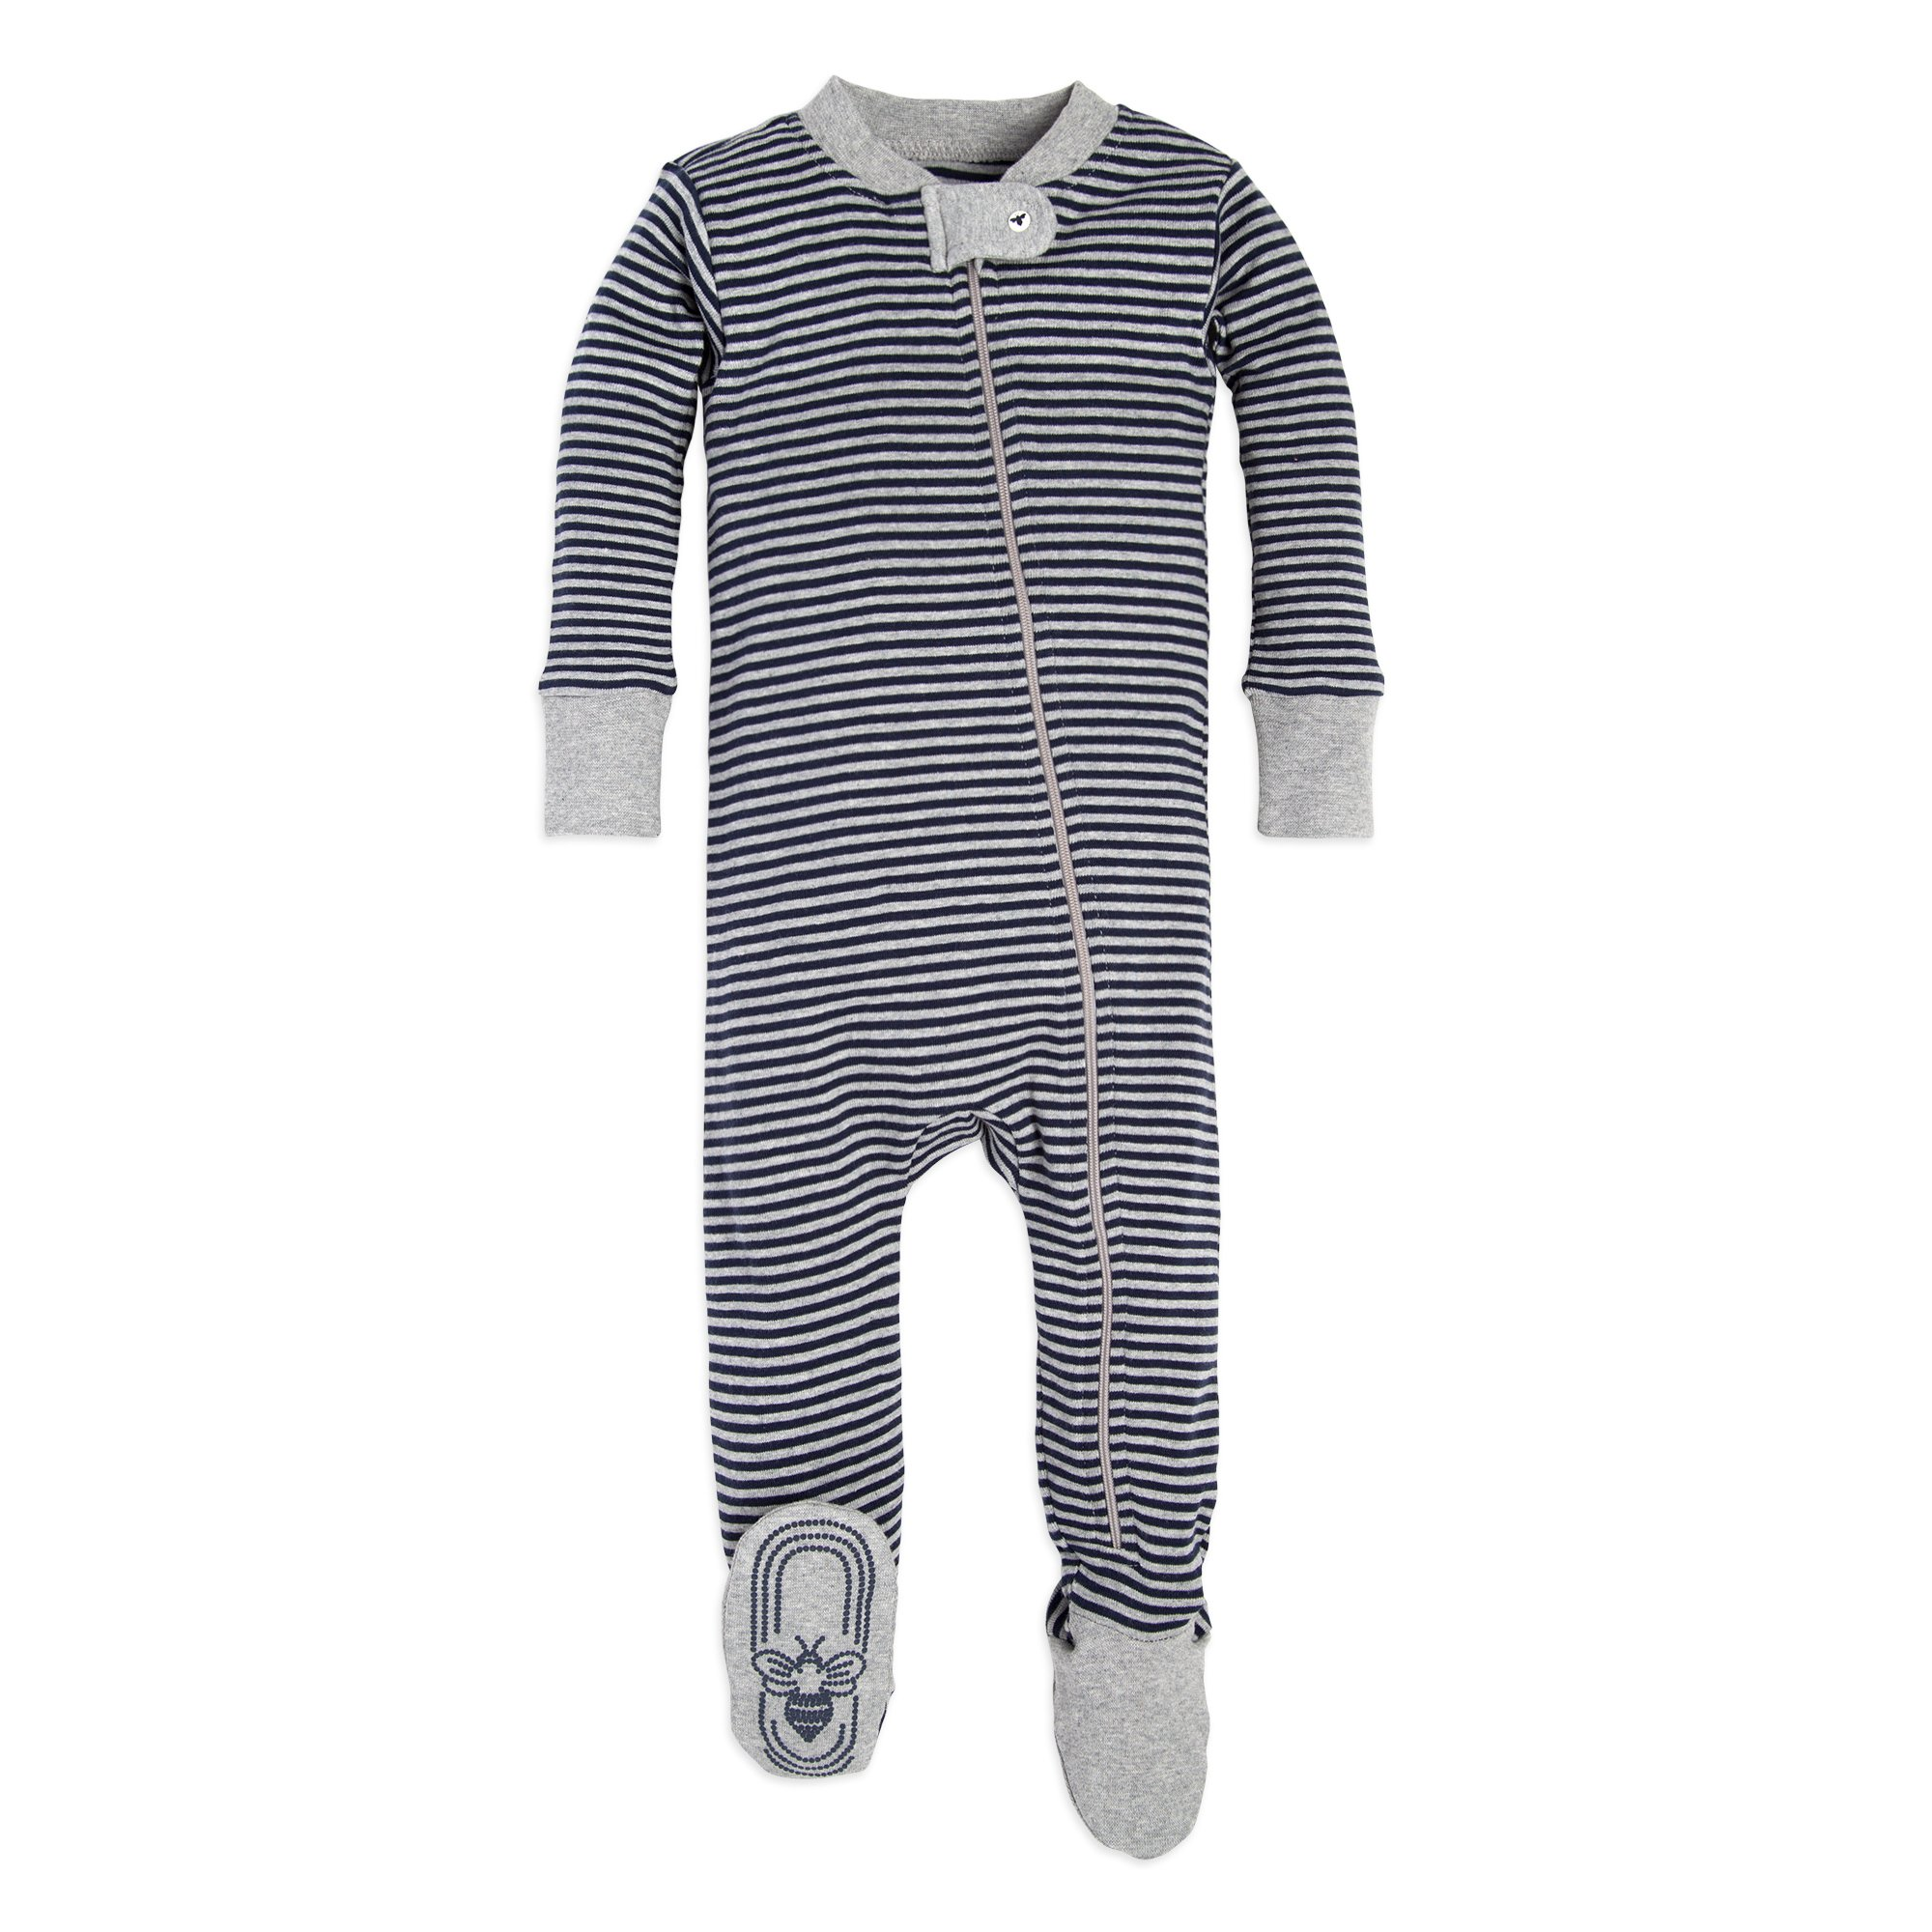 Burt's Bees Baby Baby 1-Pack Unisex Pajamas, Zip-Front Non-Slip Footed Sleeper PJs, Organic Cotton, Midnight Stripe, 12 Months